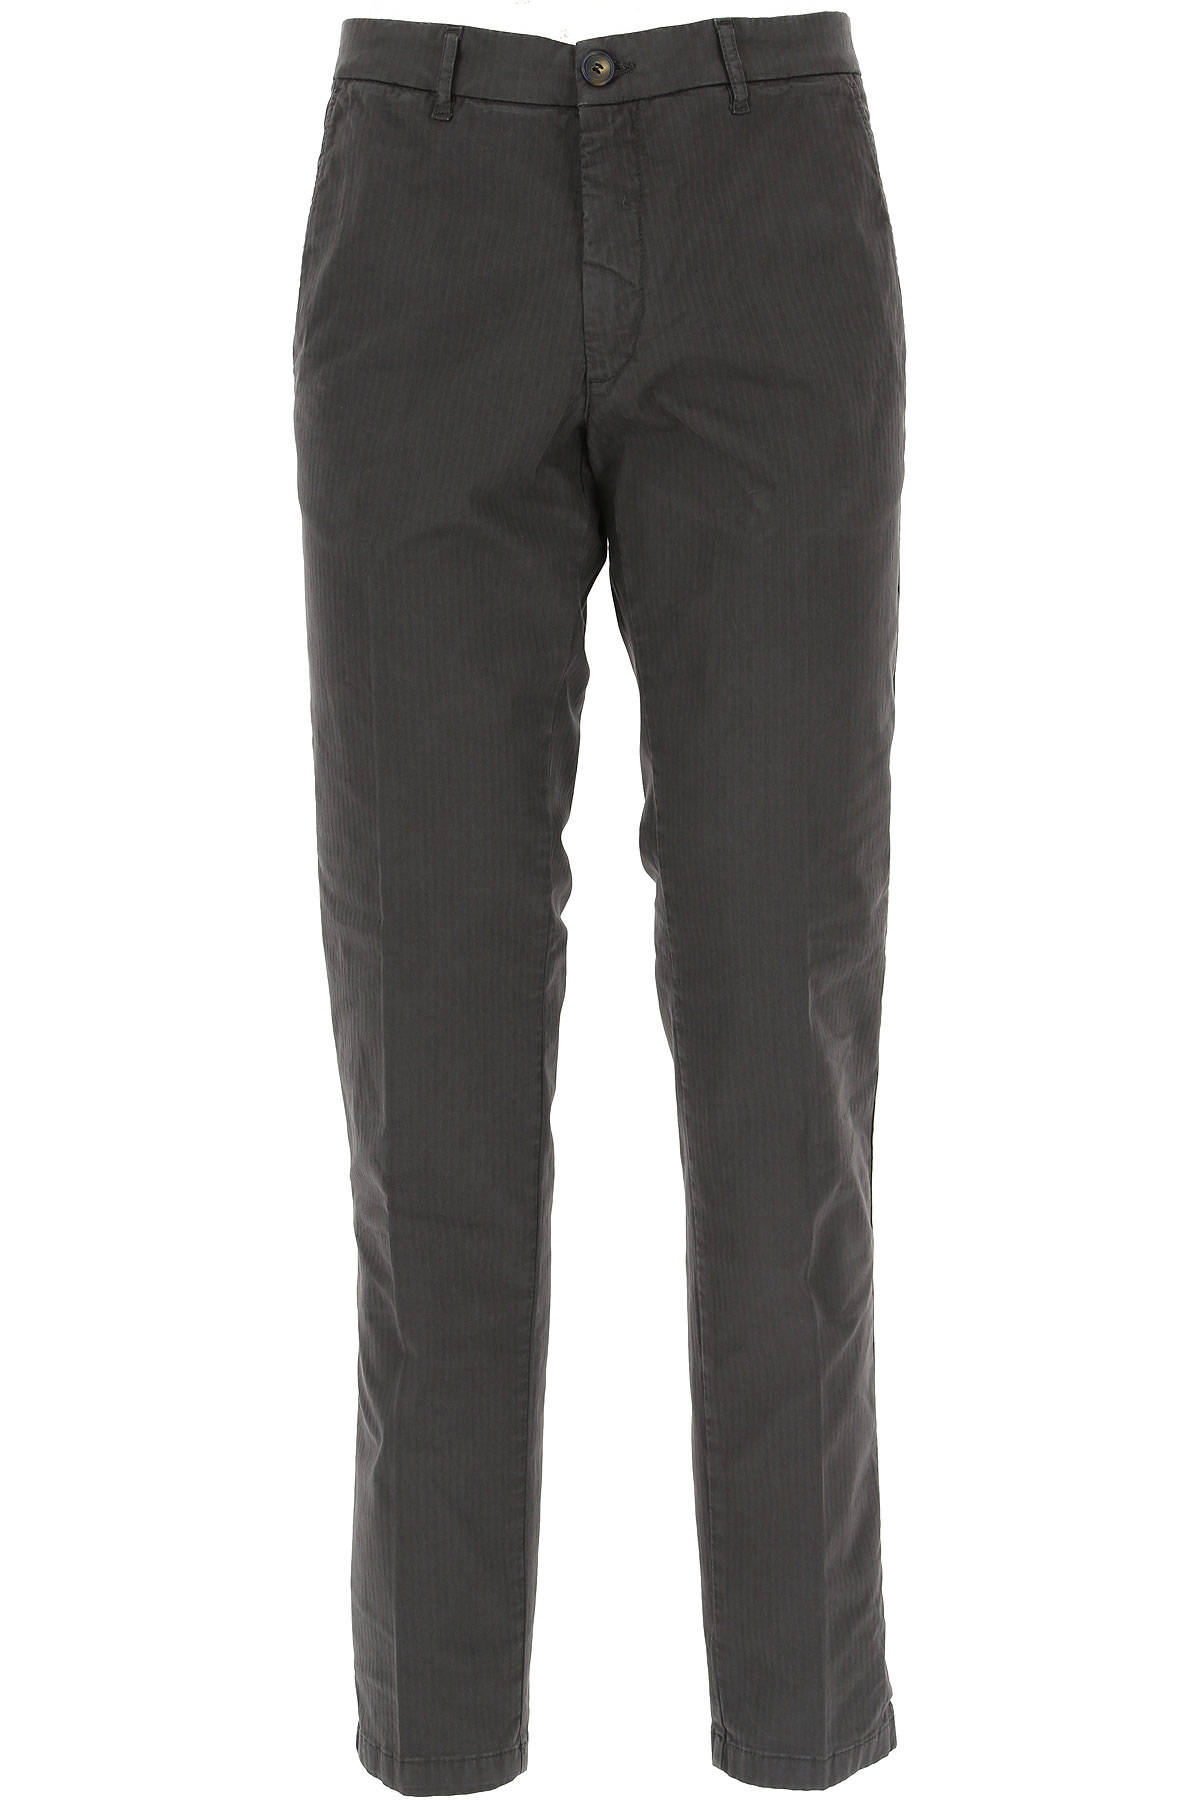 J.W. Brine Pants for Men, Graphite, Cotton, 2019, 36 38 40